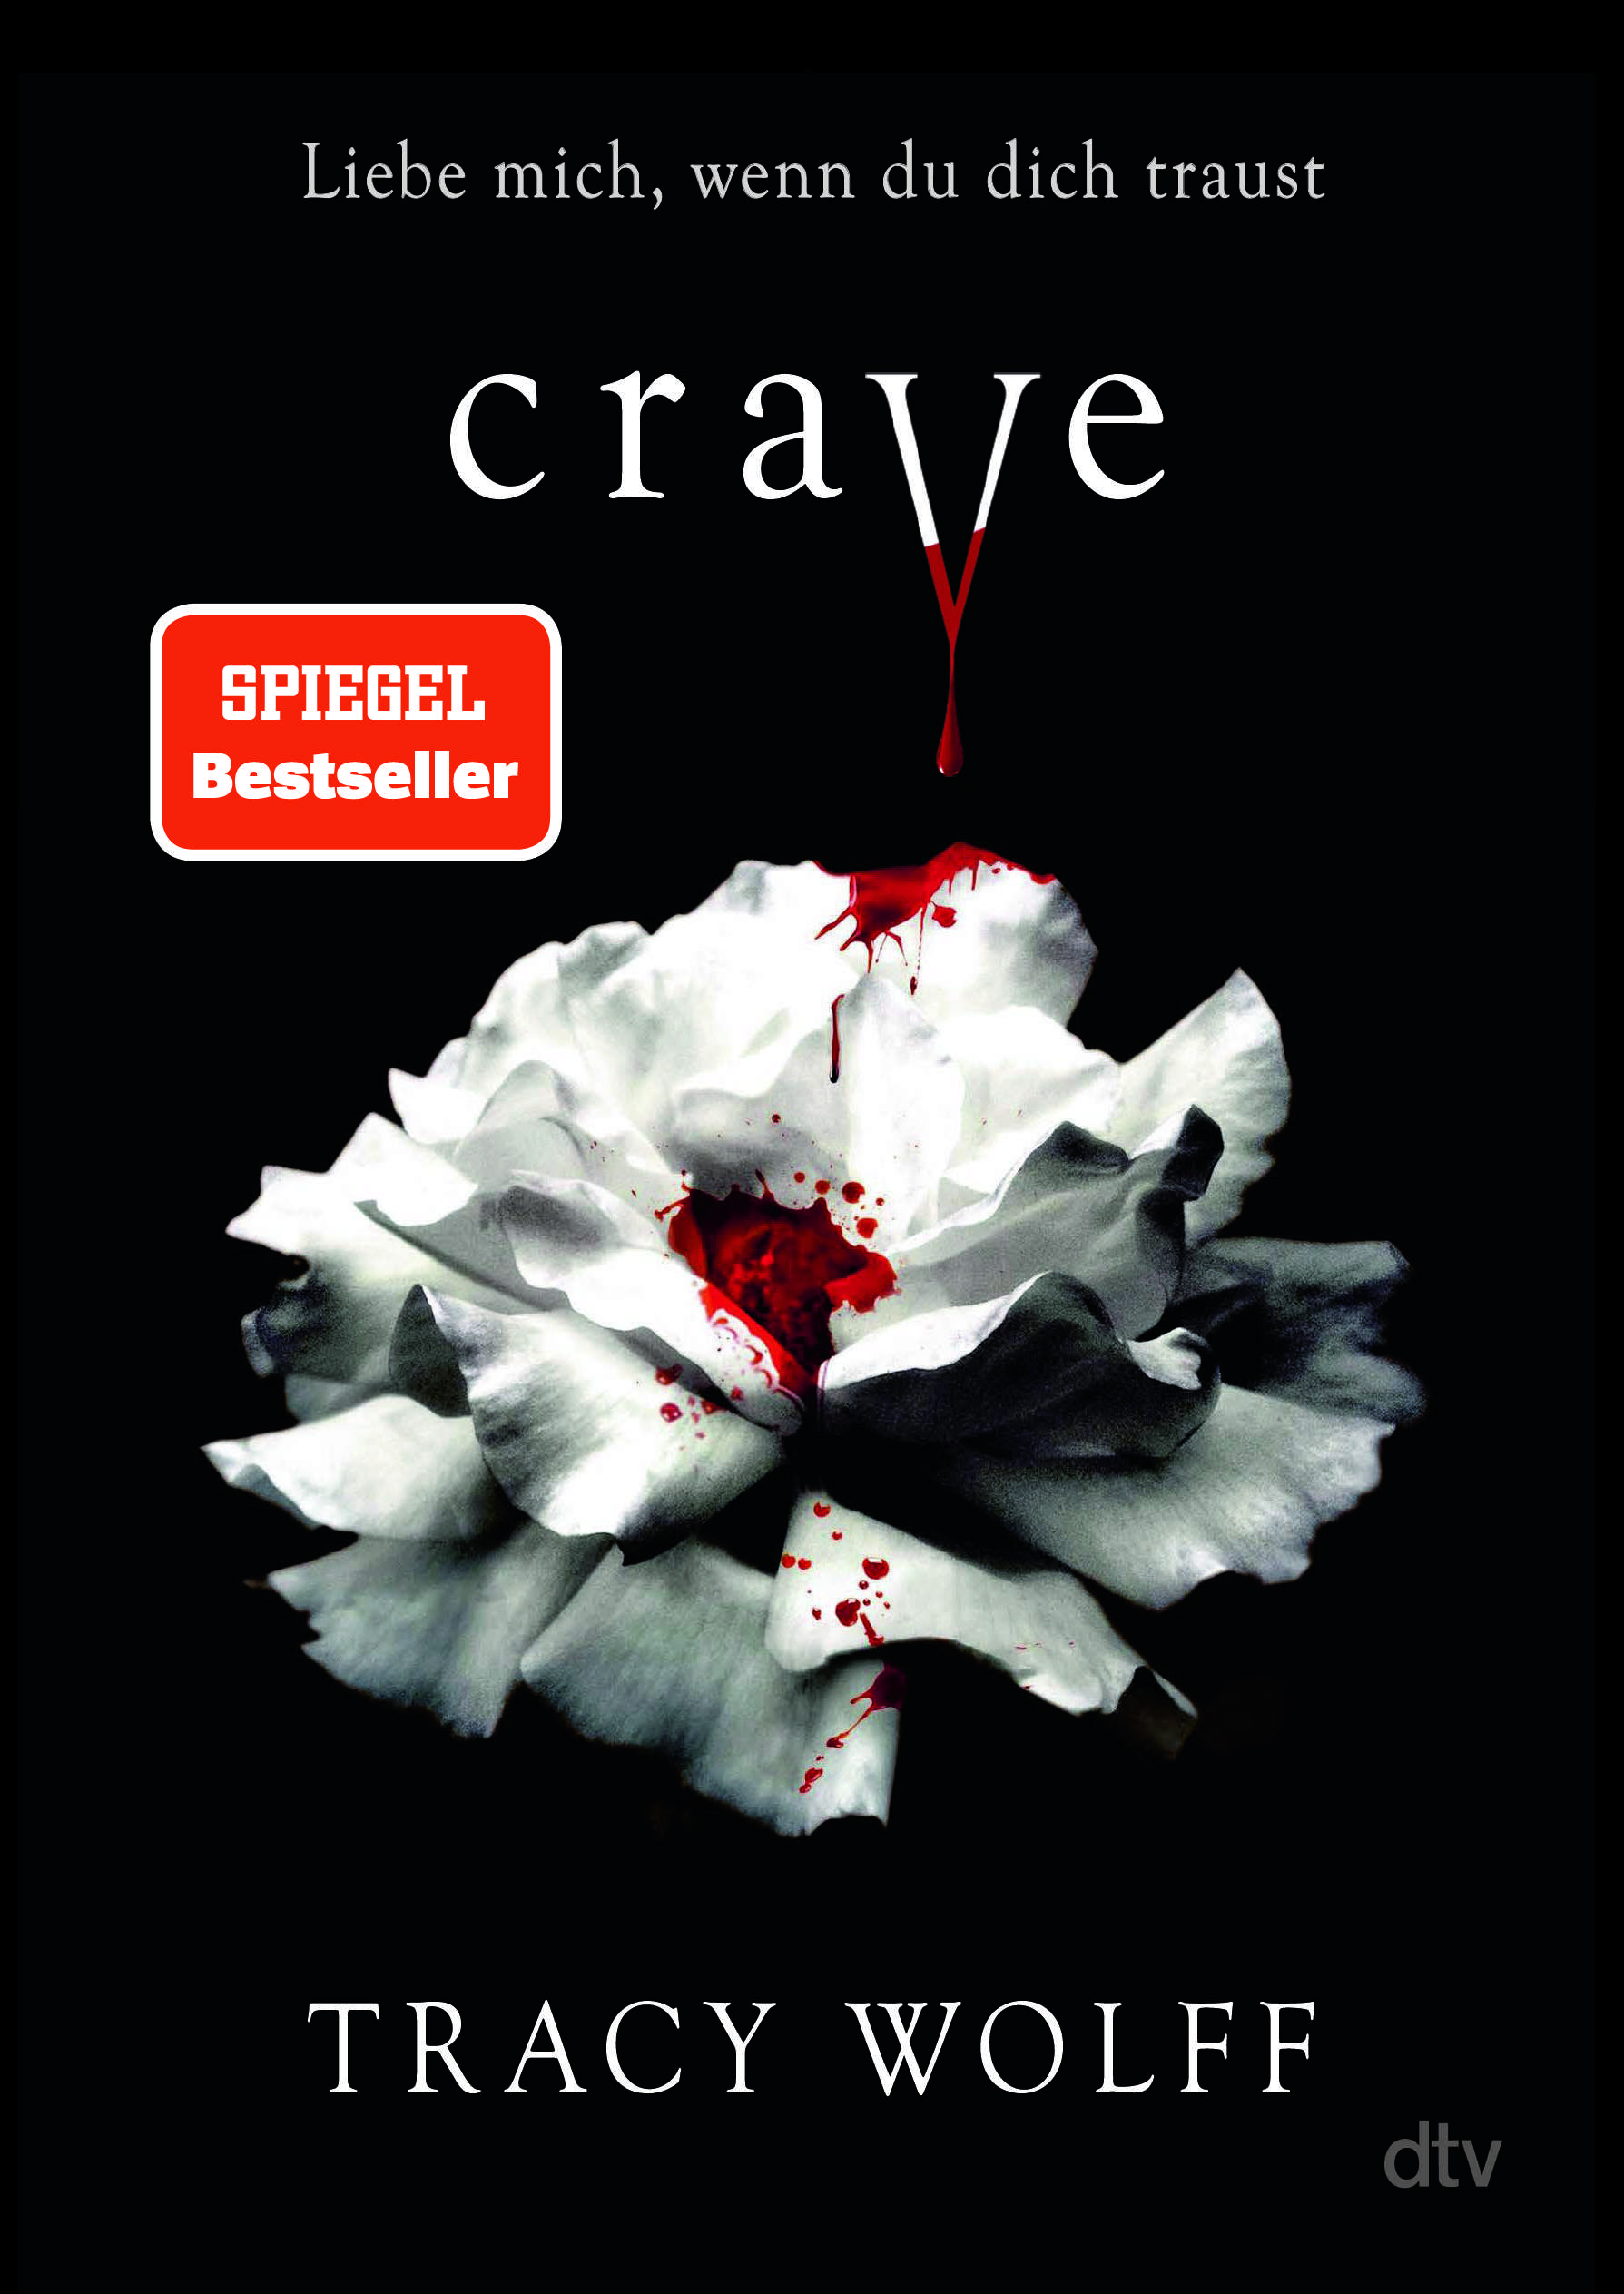 crave_tracy_wolff